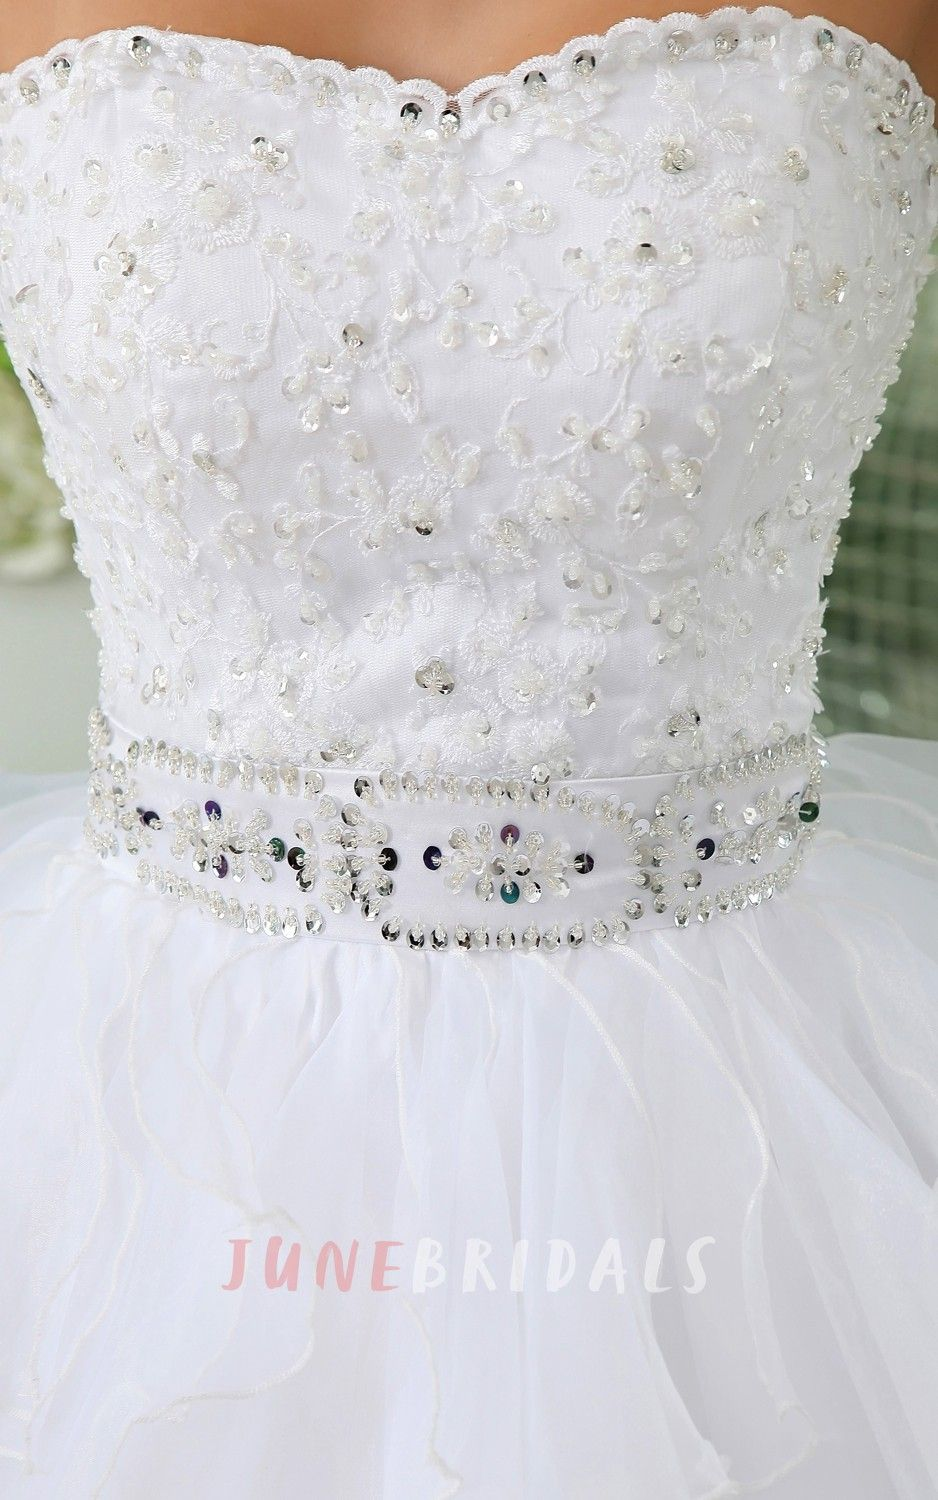 Strapless Short Layers Dress With Crystal Detailings And Ruffles